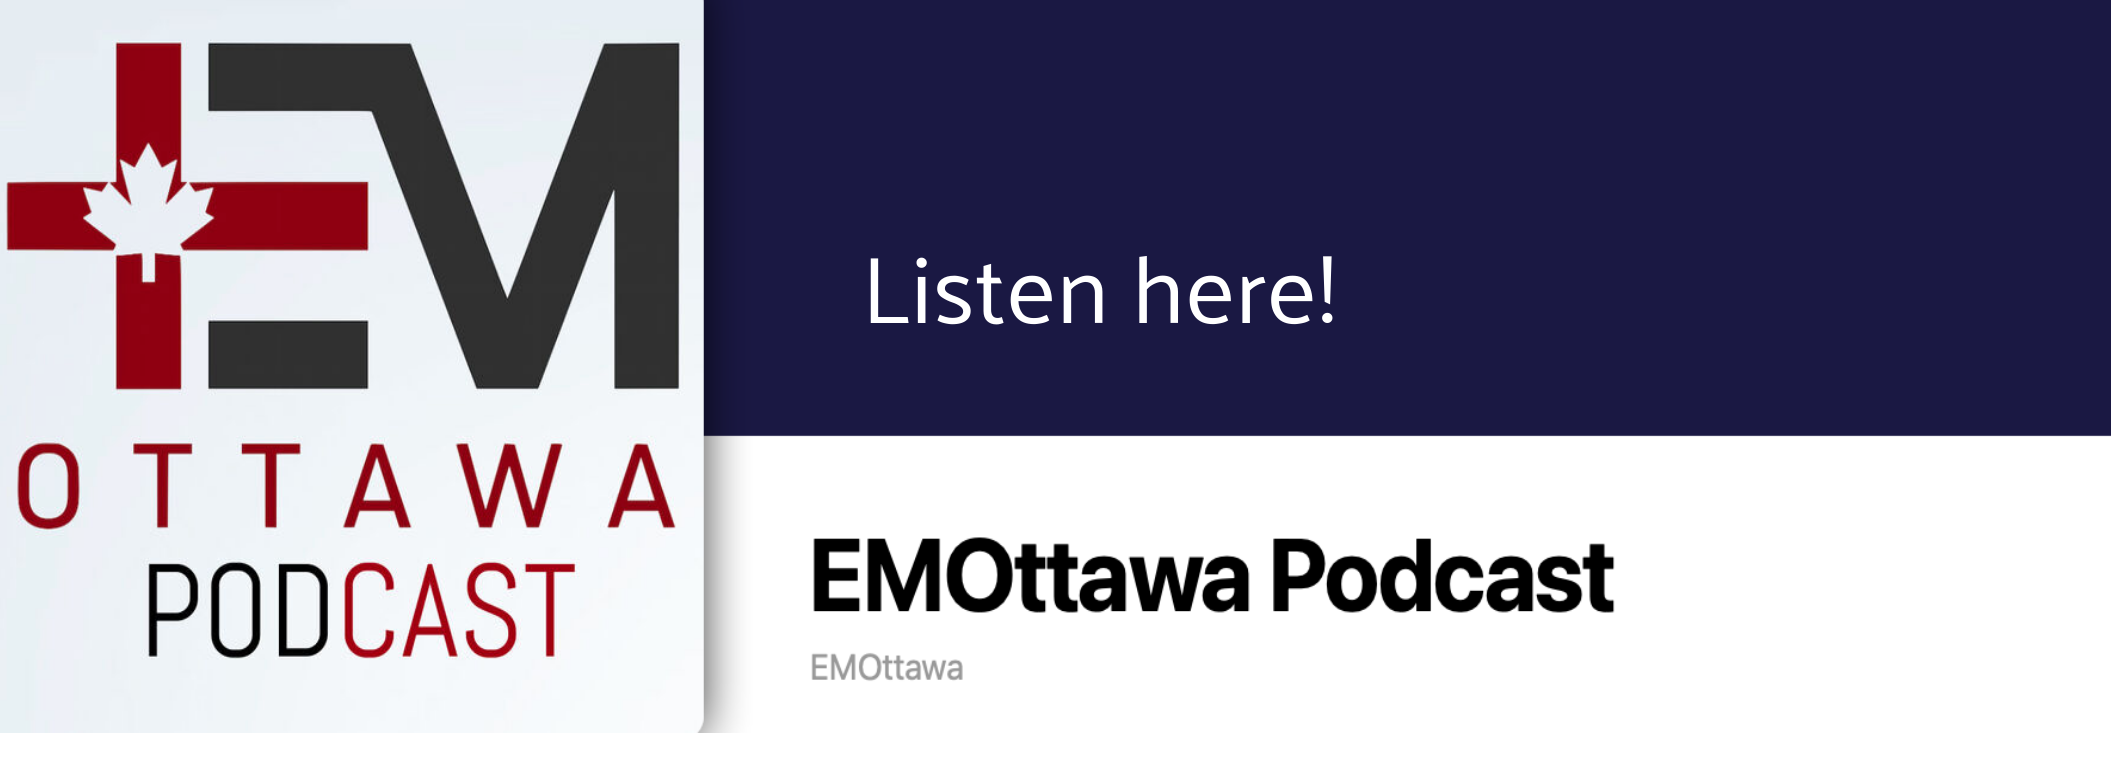 EMOttawa Podcast